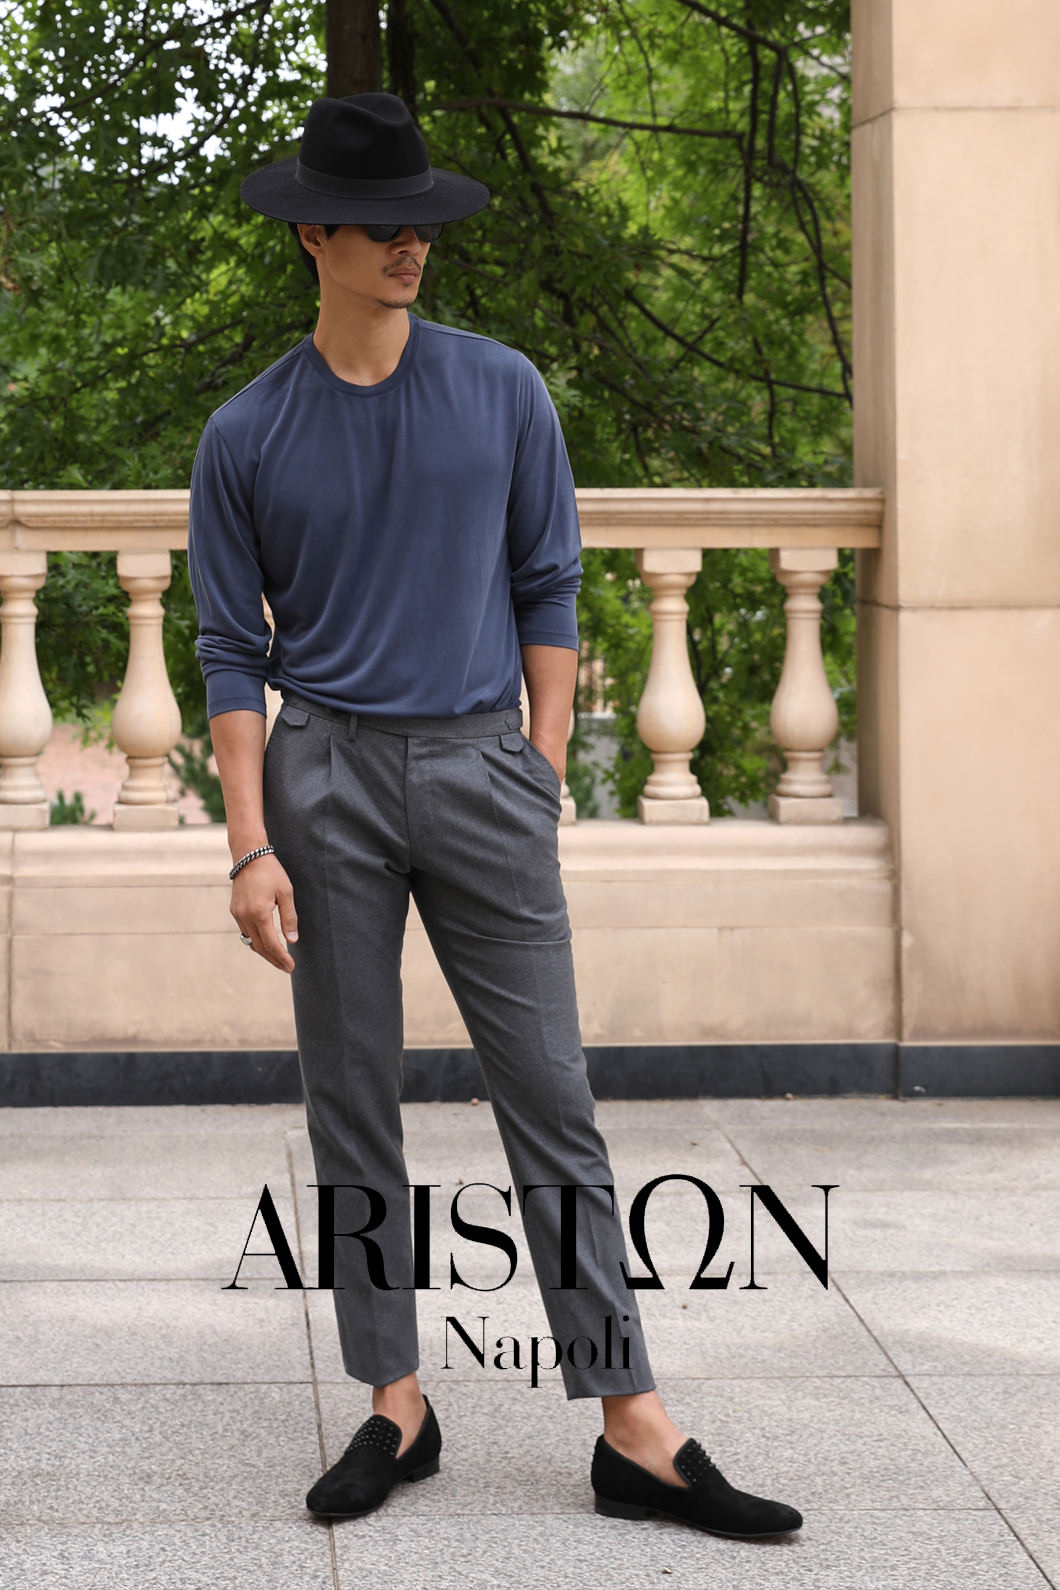 TAKE508 ITALY ARISTON NAPOLI WOOL PANTS-KHAKI GRAY2/1이상 판매완료!!